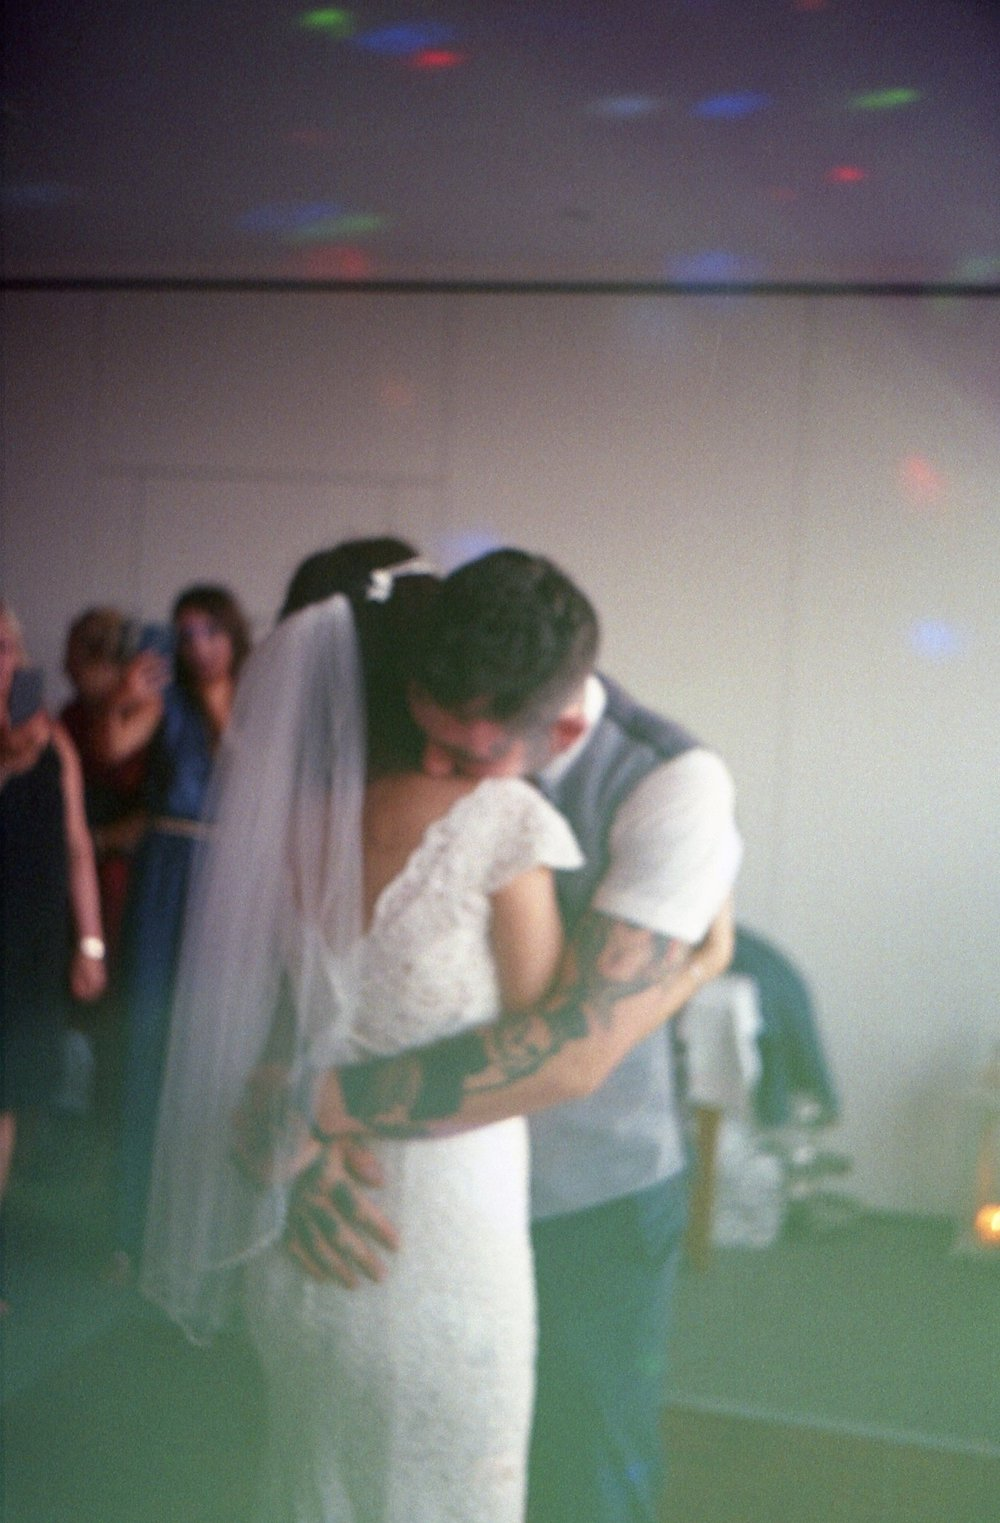 Chantelle and Simon hugging. Taken with an Olympus Trip